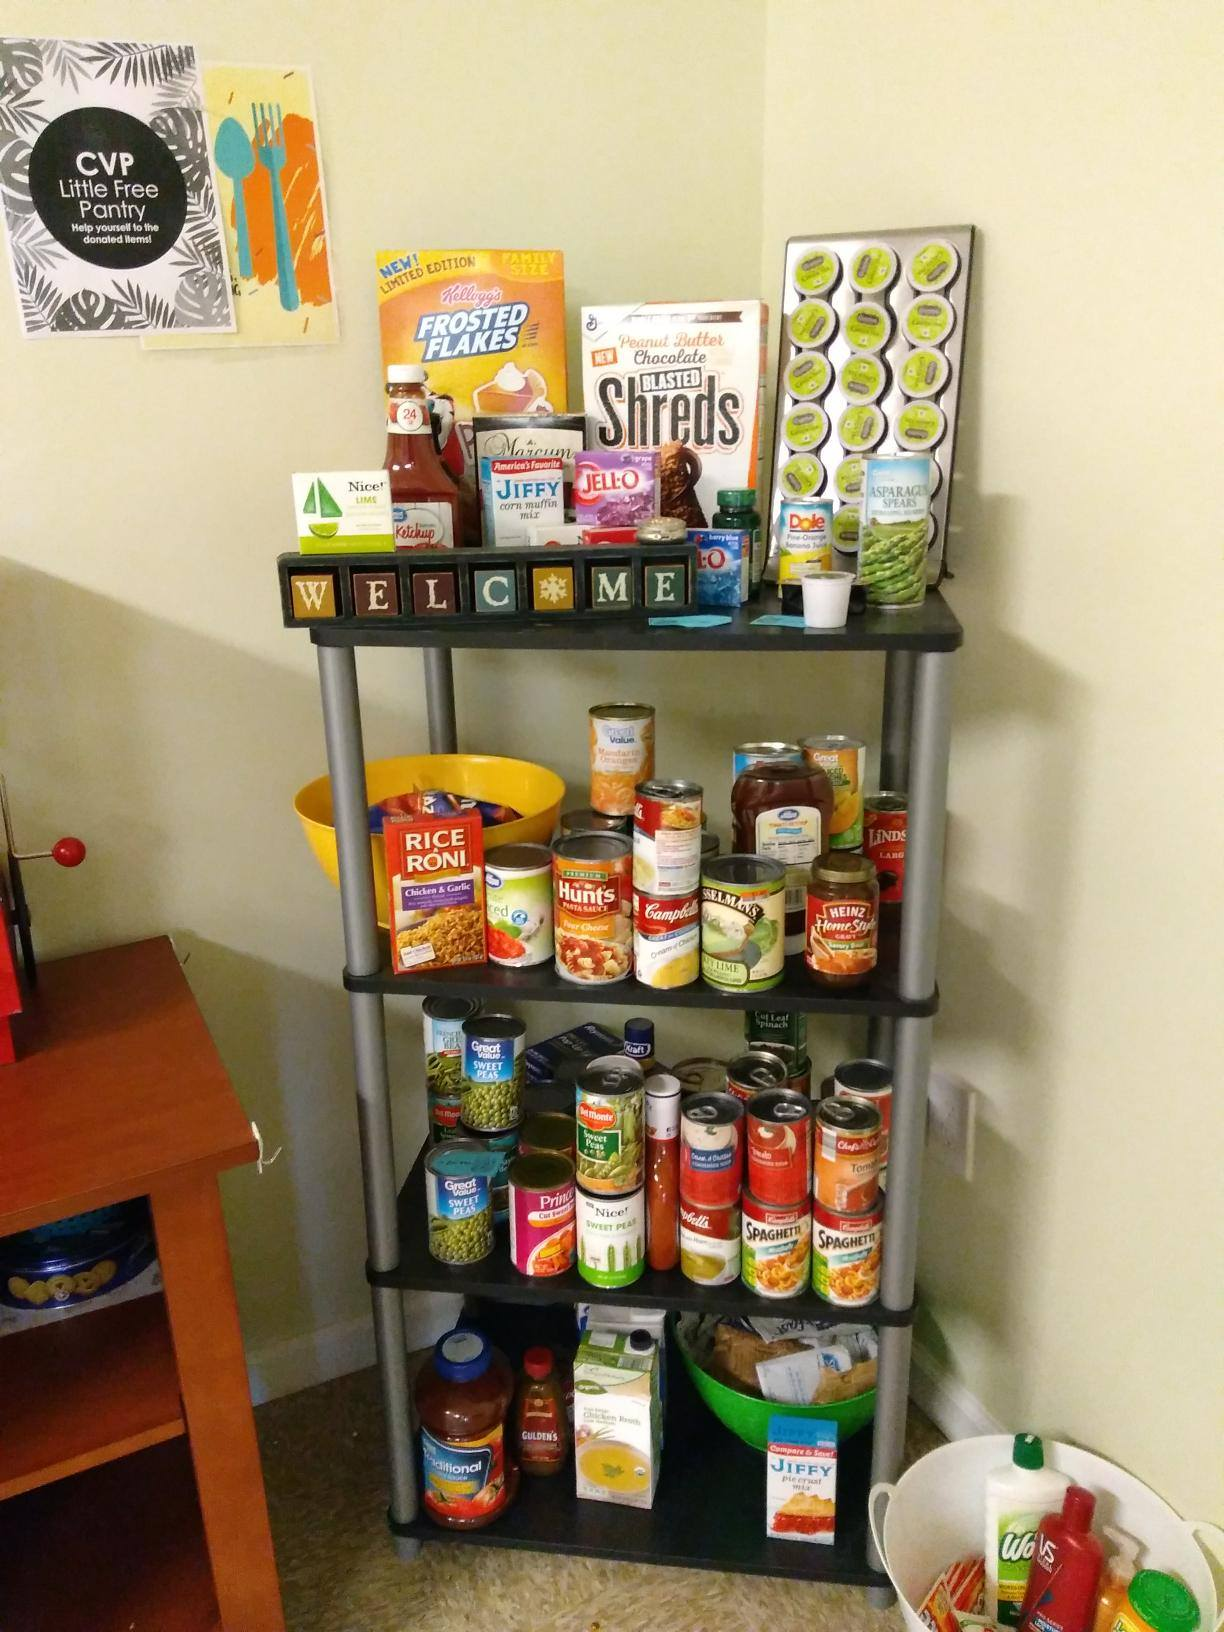 Community Village of Potsdam Little Free Pantry Photo 2